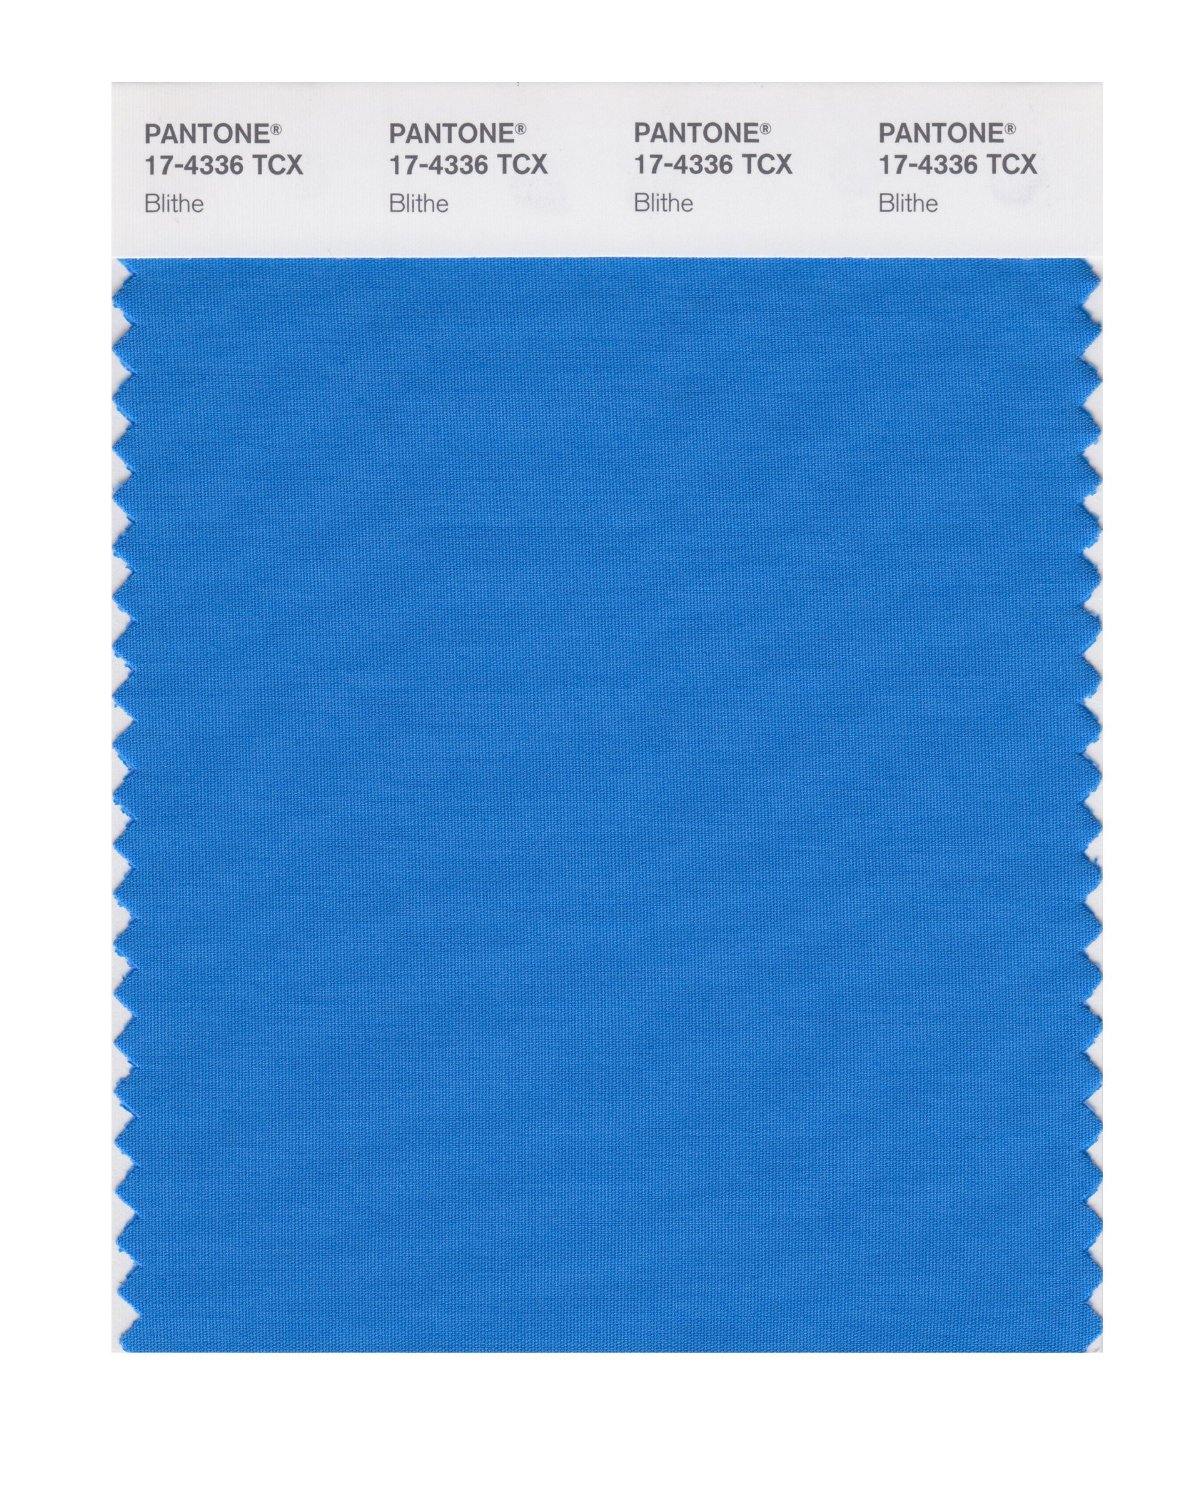 Pantone Smart Swatch 17-4336 Blithe